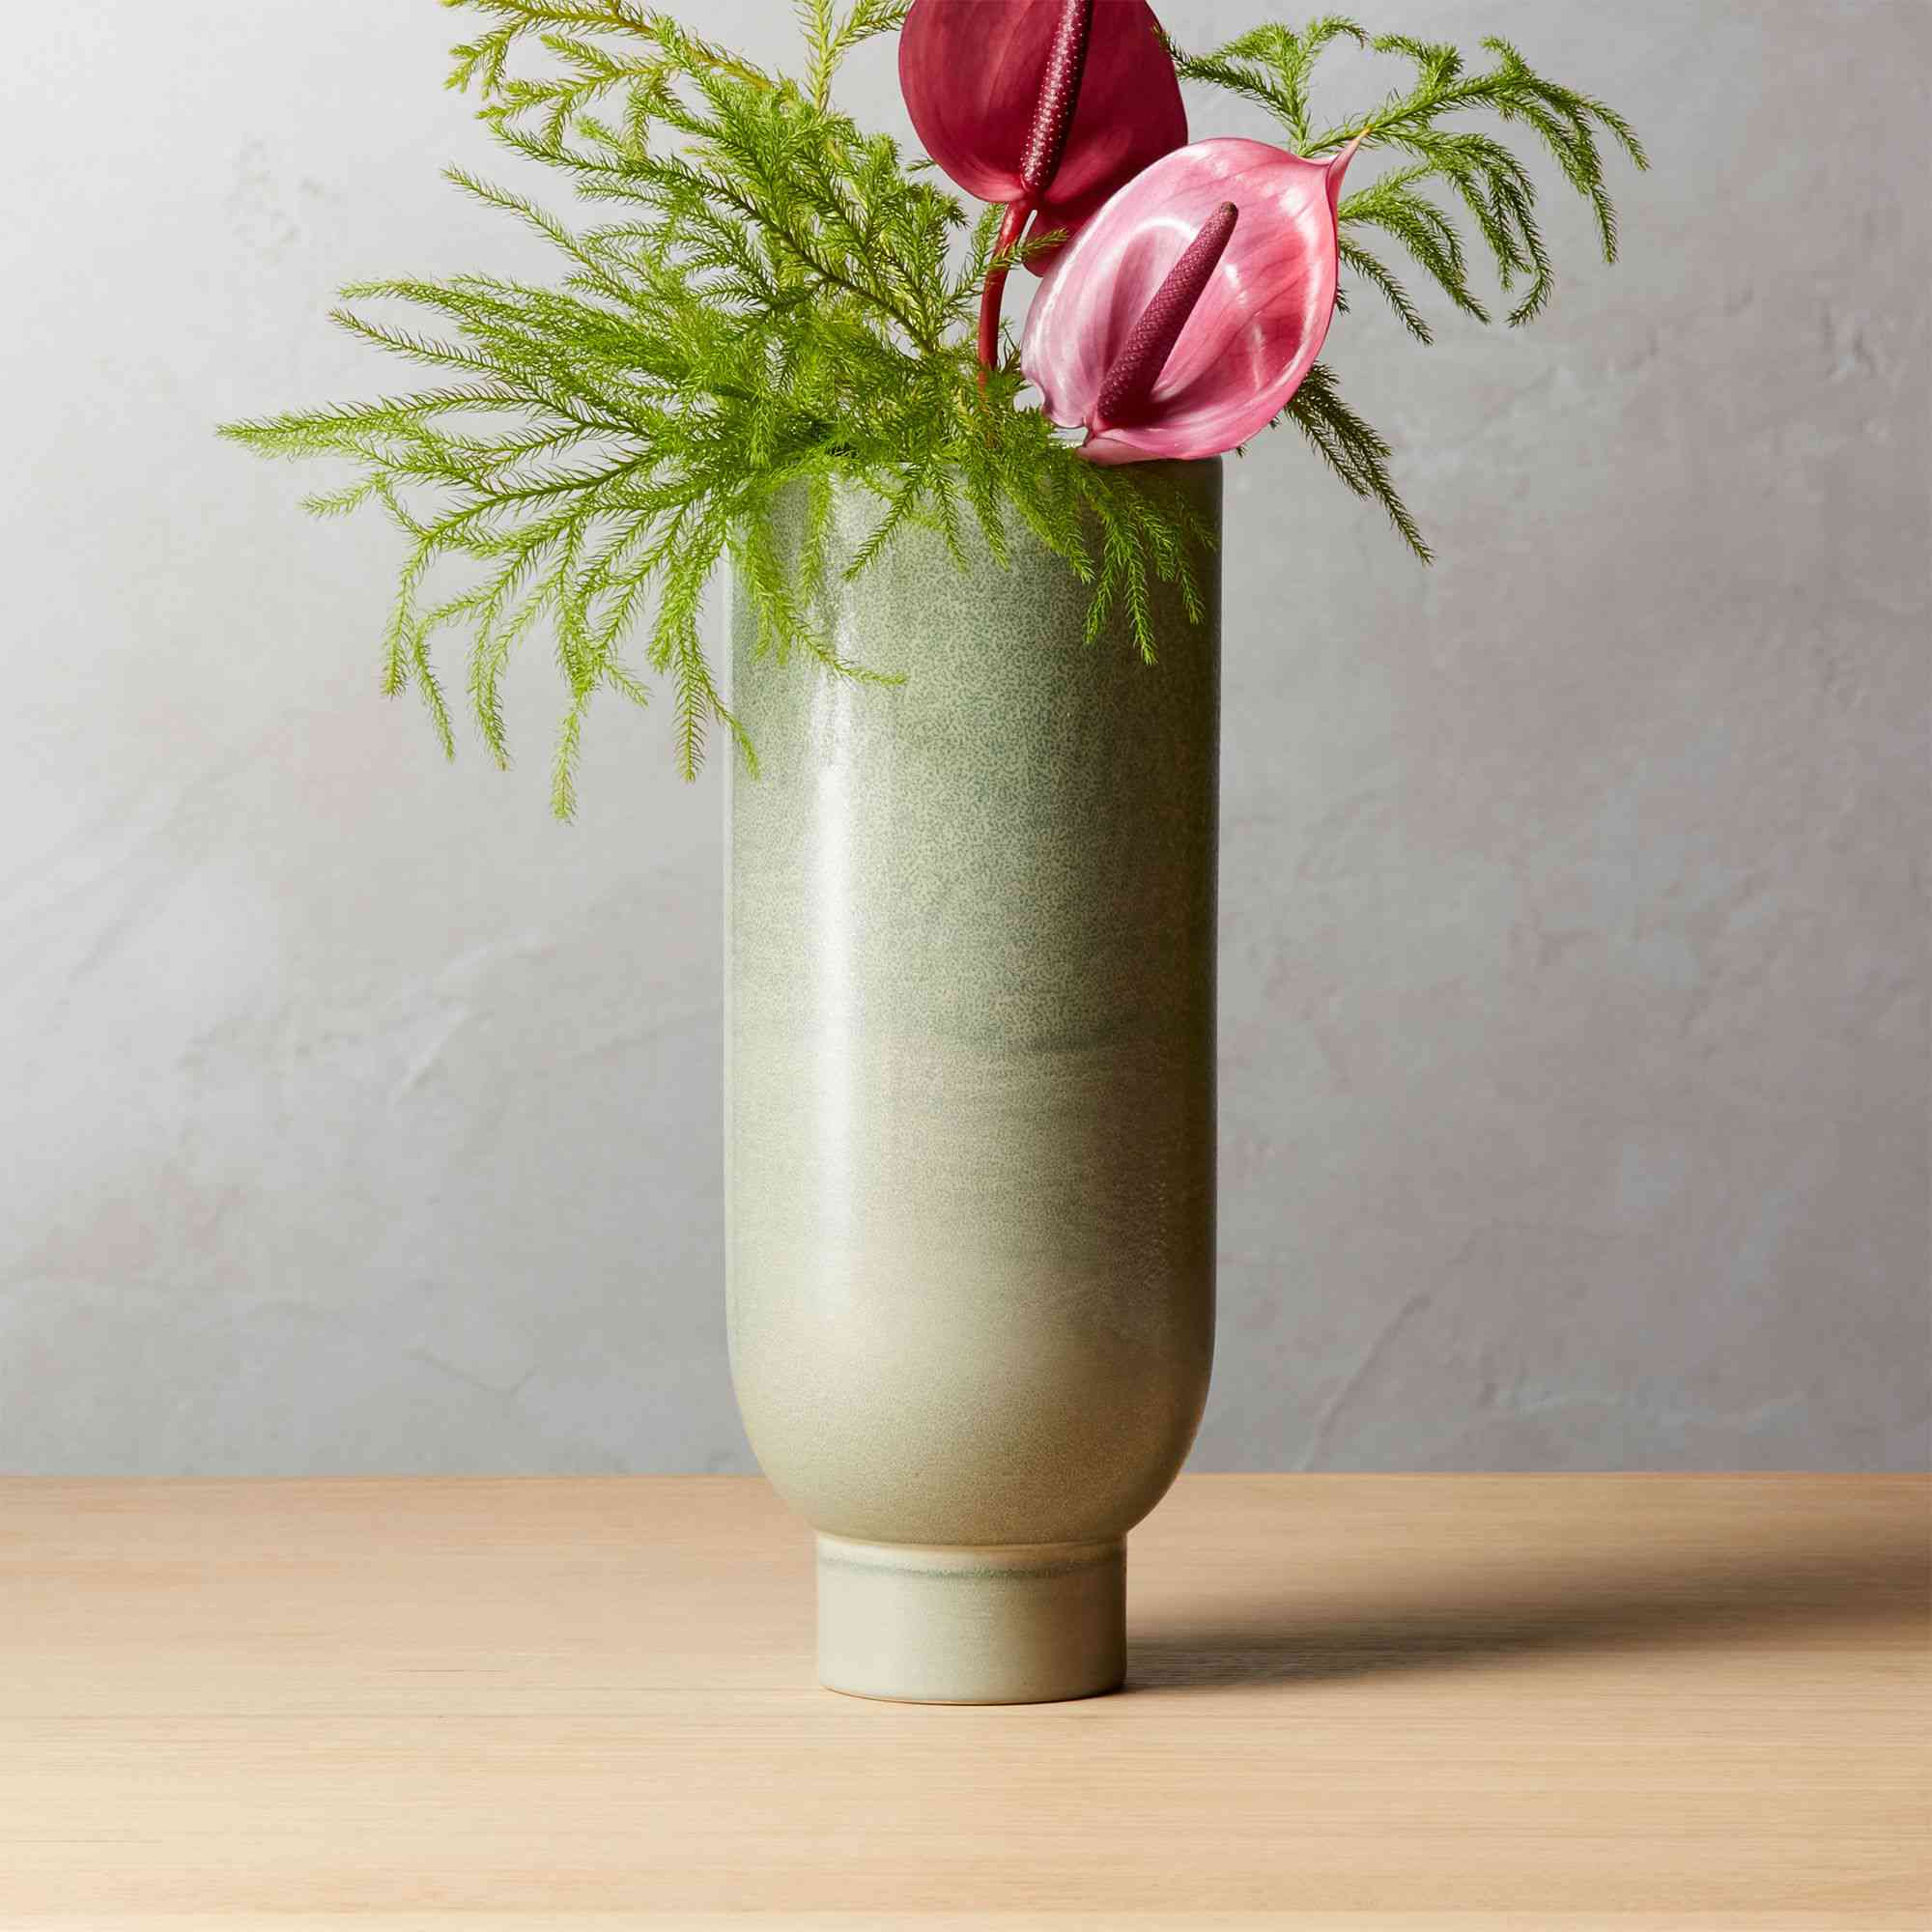 A green tall earthenware vase by CB2.